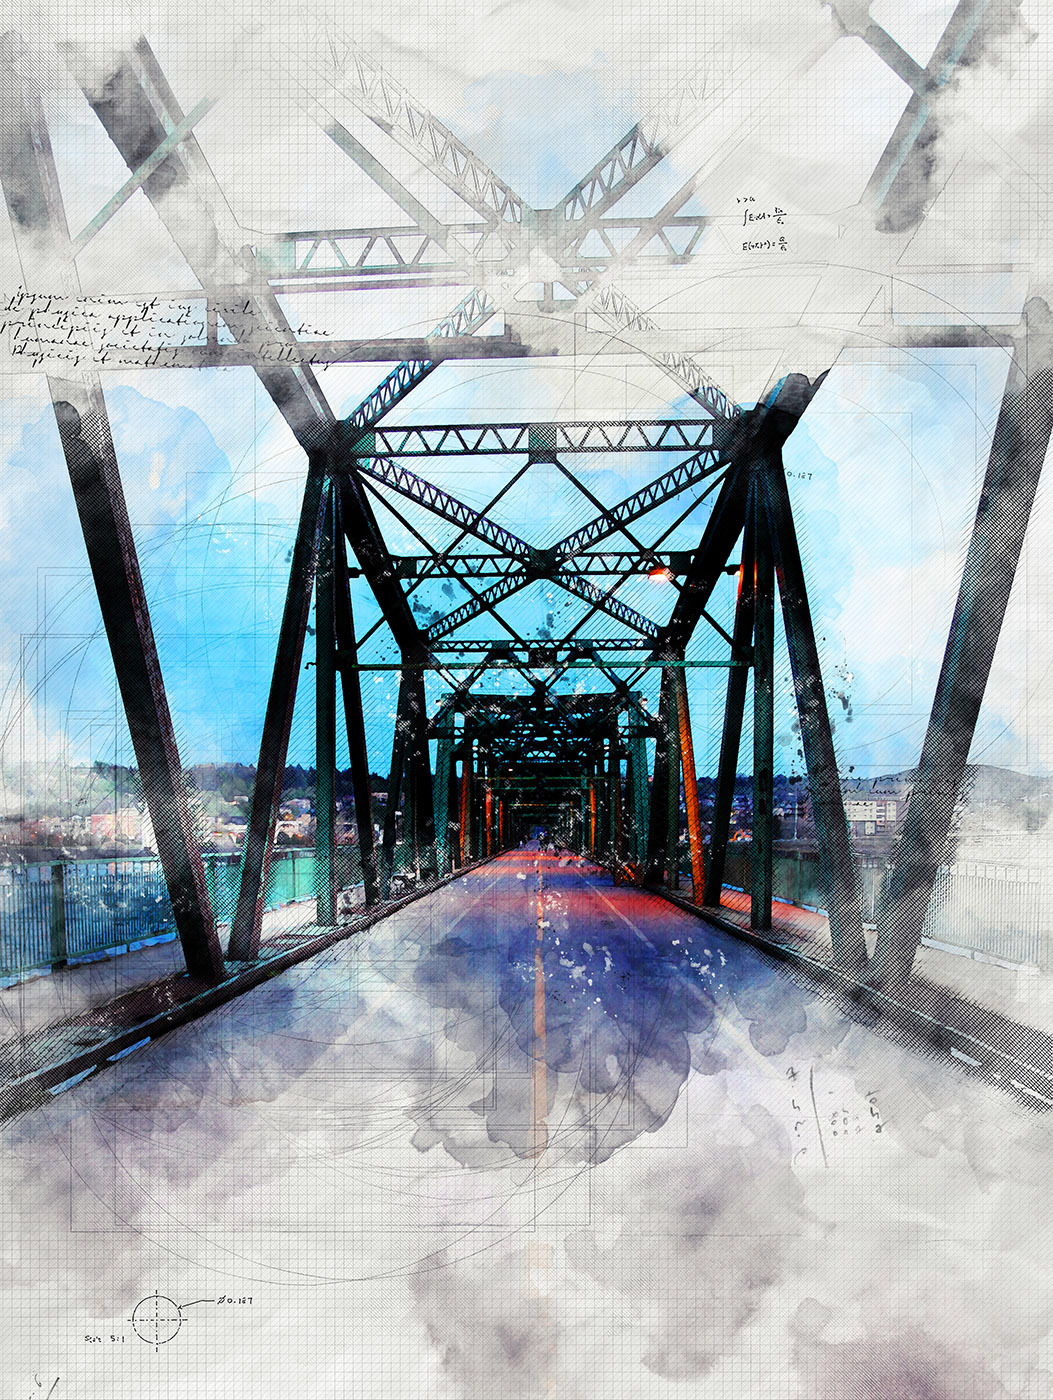 Old Saguenay City Bridge Sketch Image - Stock Photography